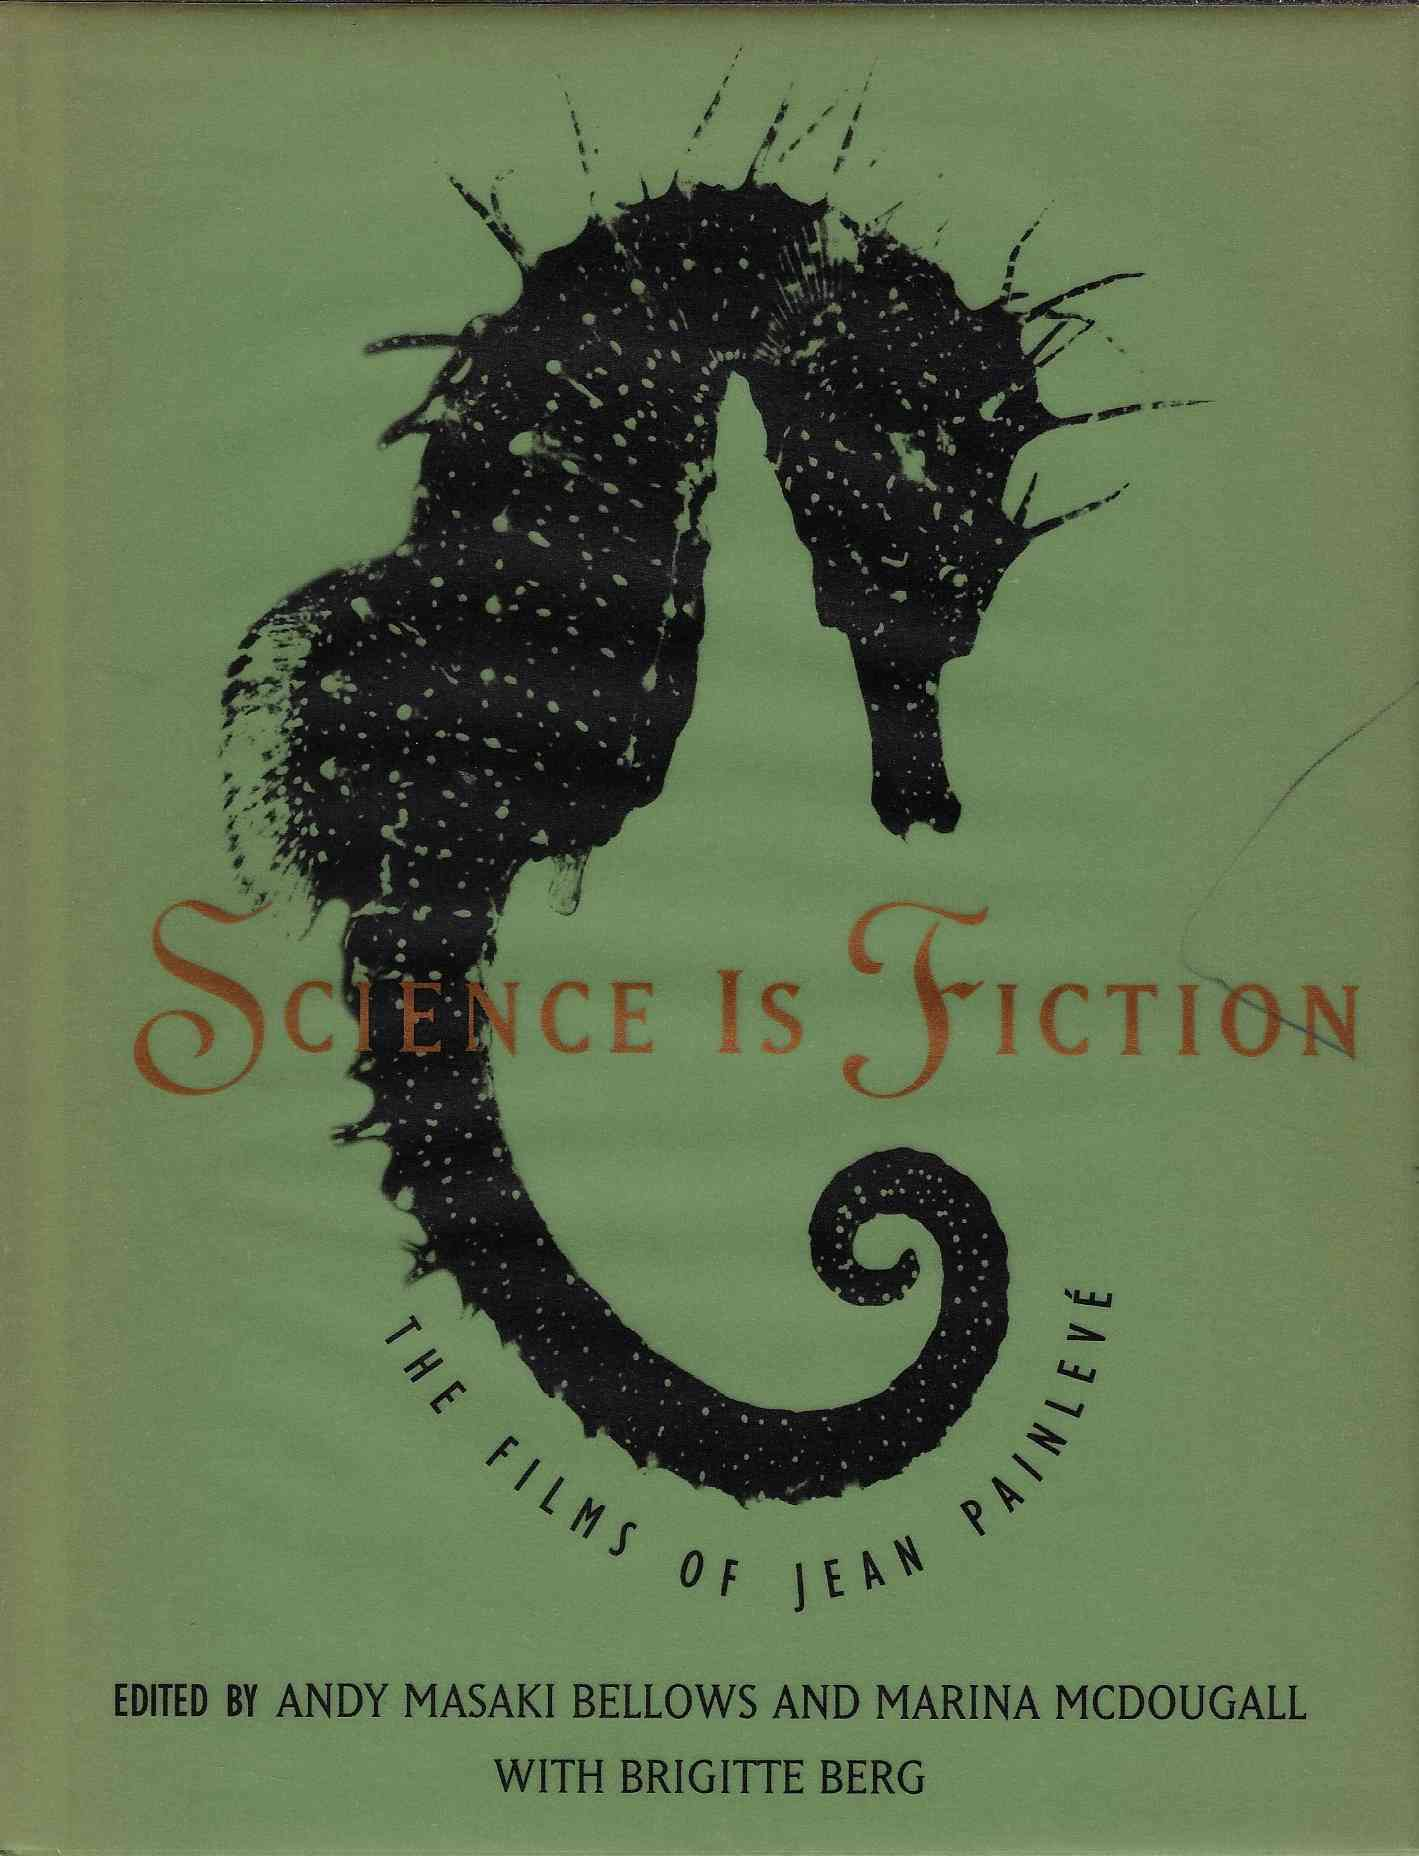 Image for Science is Fiction The Films of Jean Painleve